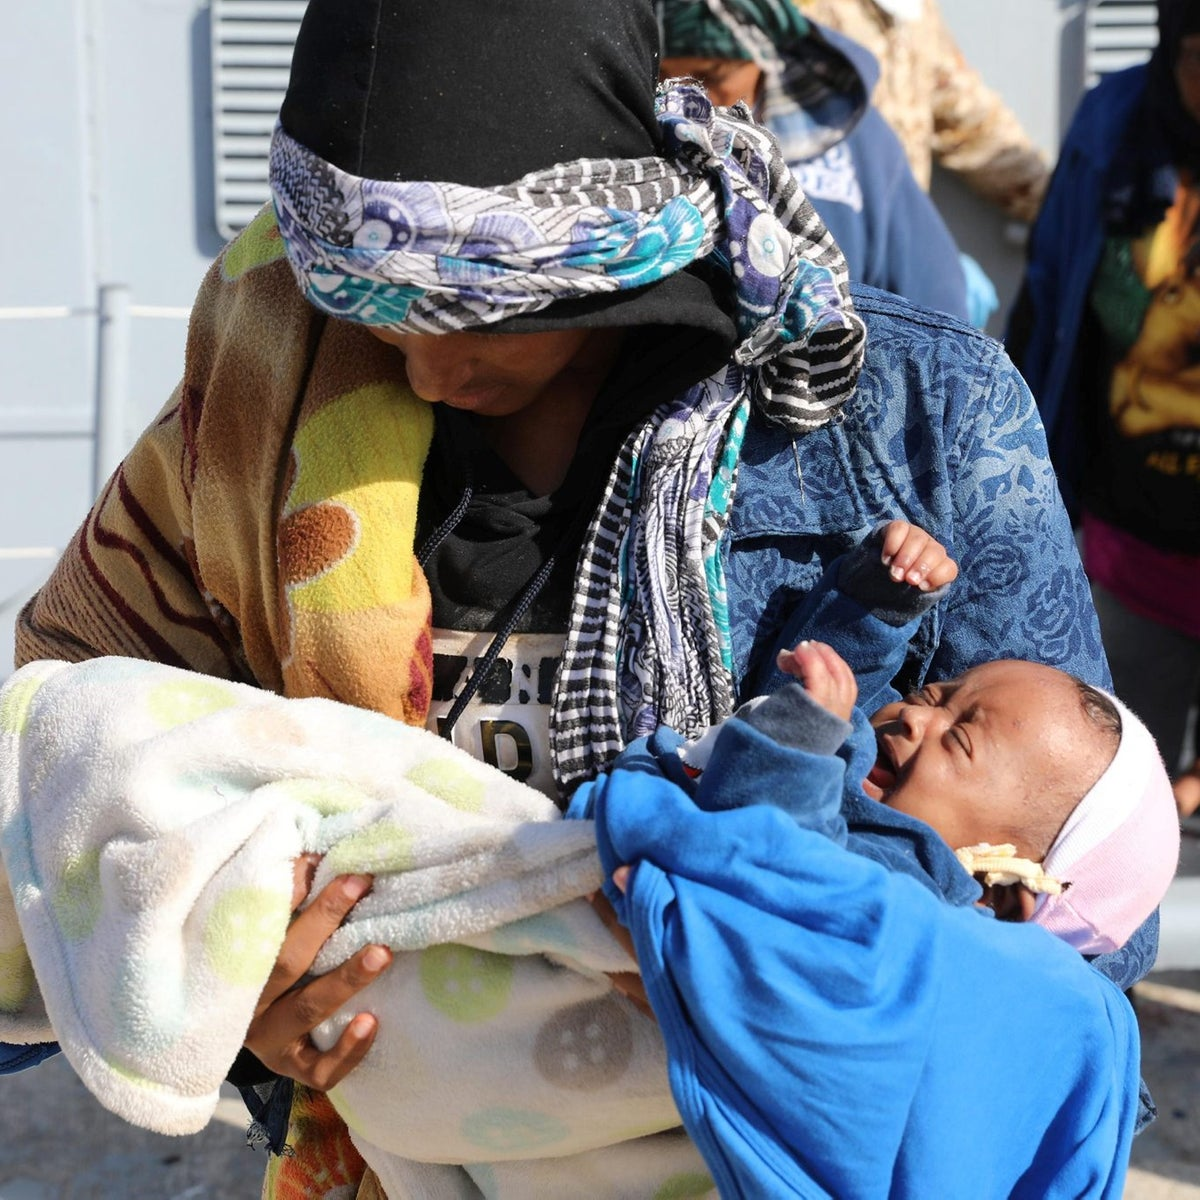 A migrant carries a baby at a naval base after they were rescued by Libyan coastal guards in Tripoli, Libya, November 24, 2017.